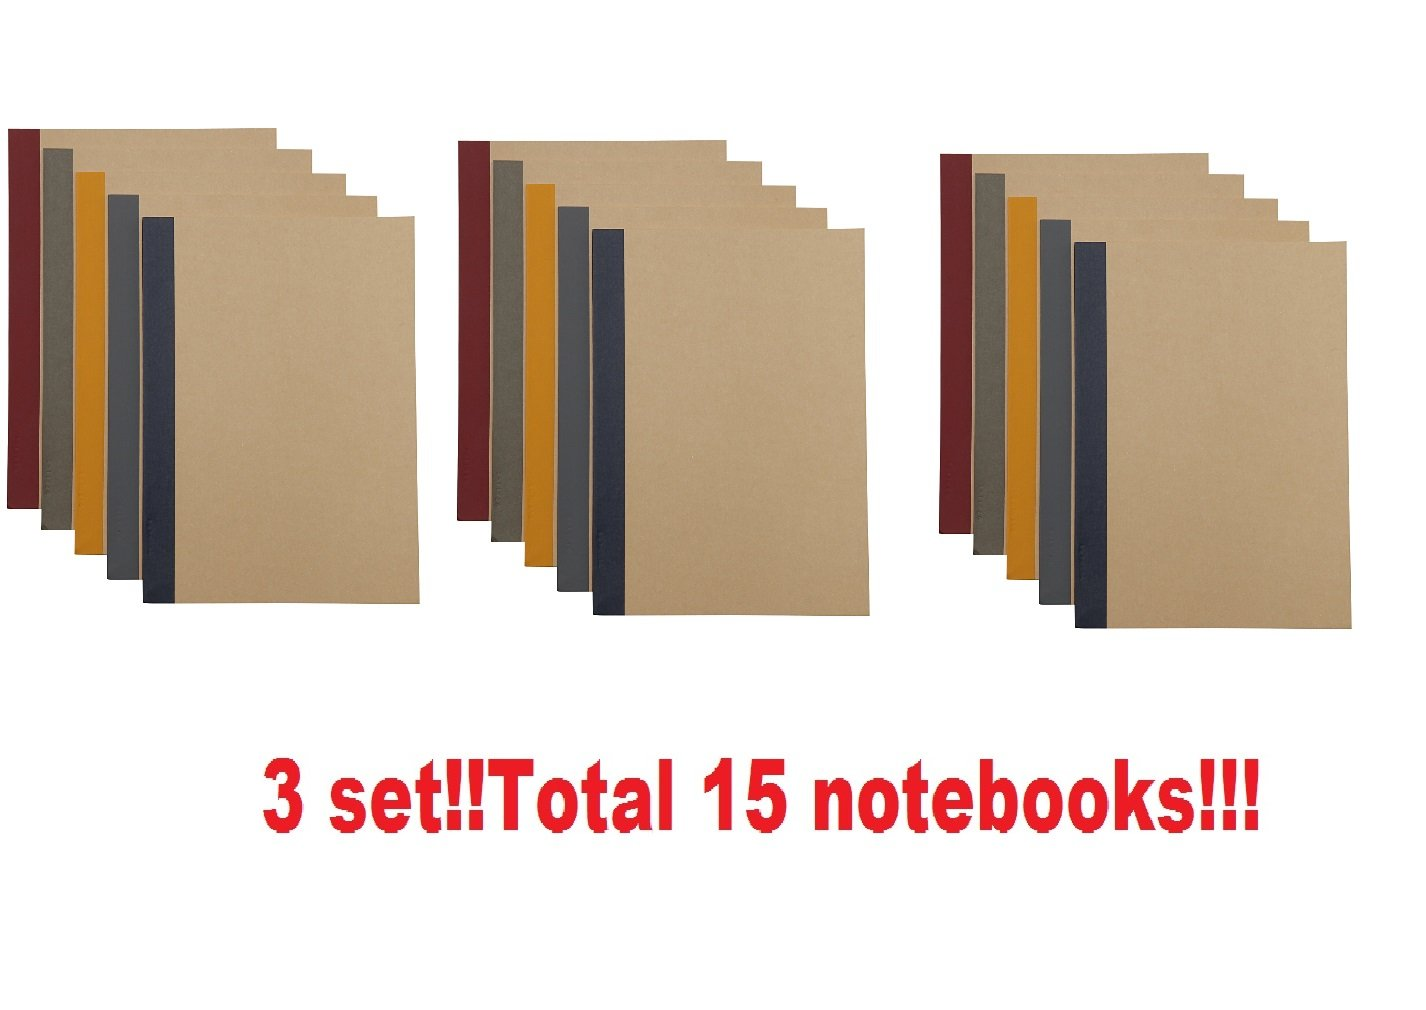 MUJI Planted tree Paper Note Book (Hard to bleedthrough) 15 set B5 · 90 sheets · 6mm ruled paper,5 colors from Japan 76316145